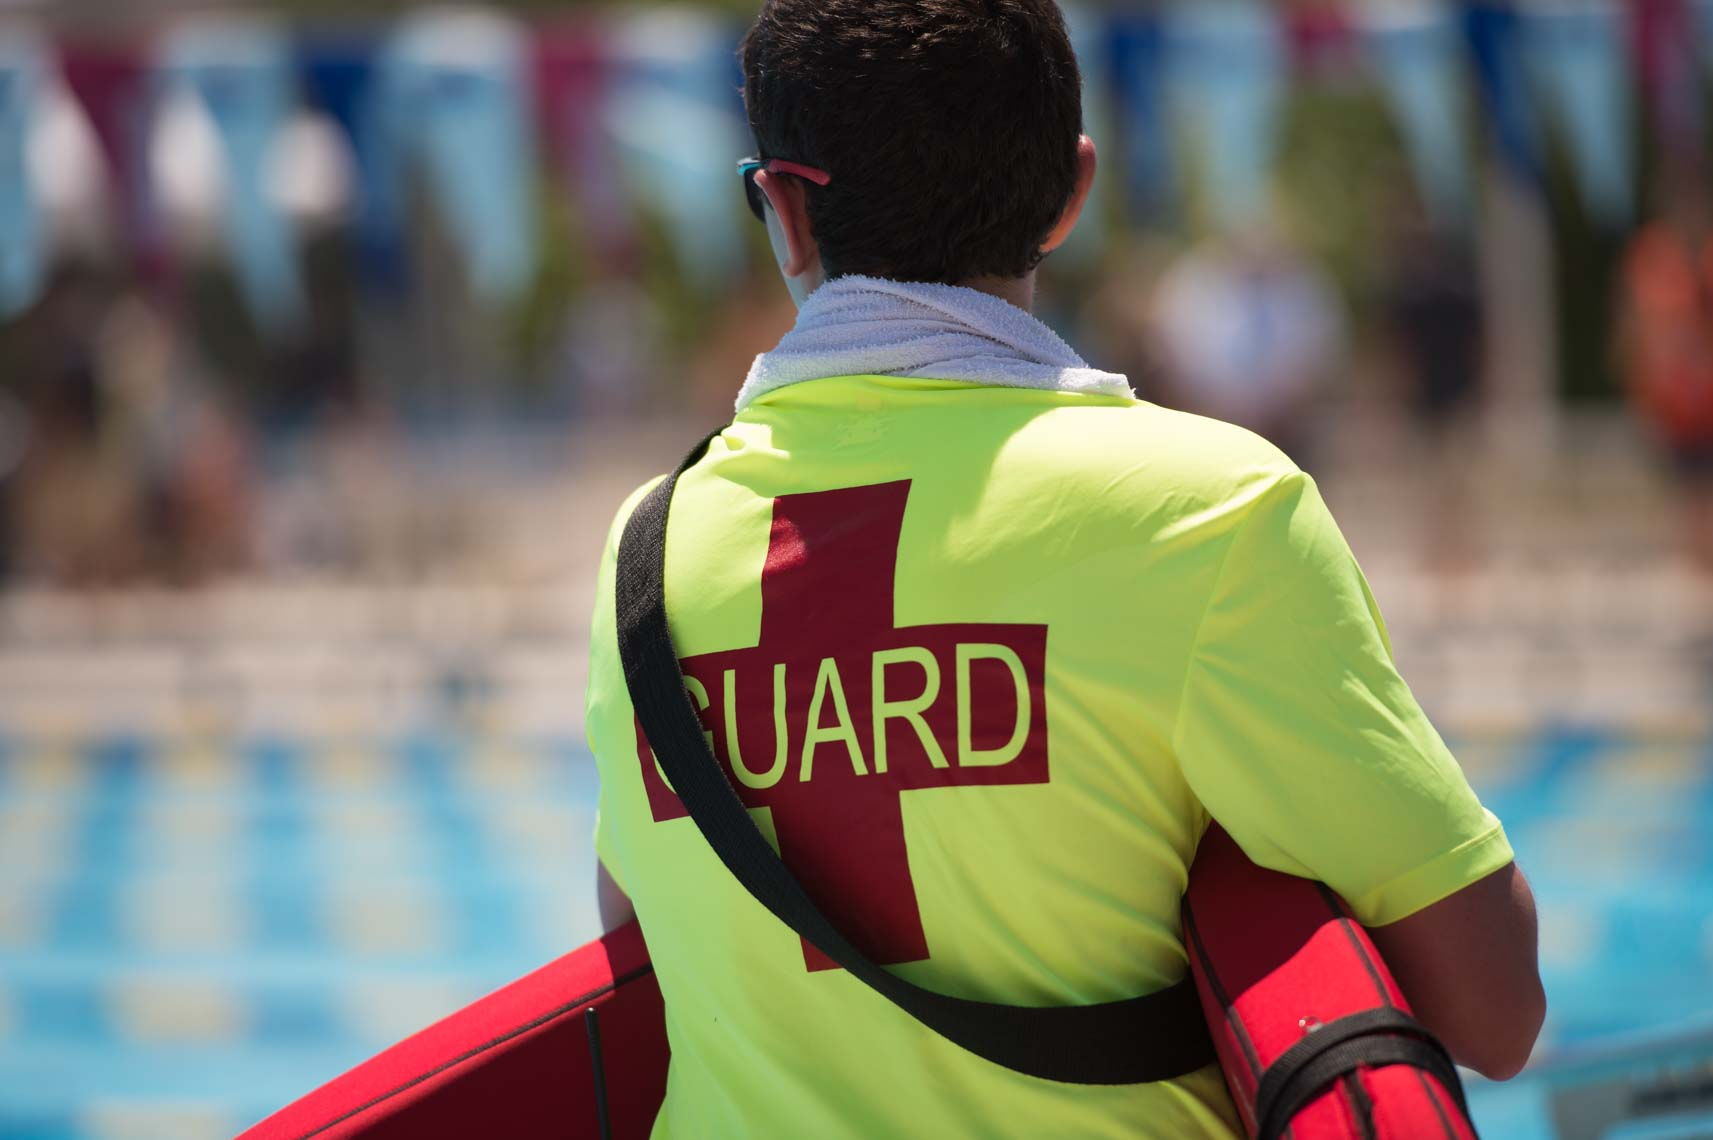 Lifeguard stock by Mike Lewis